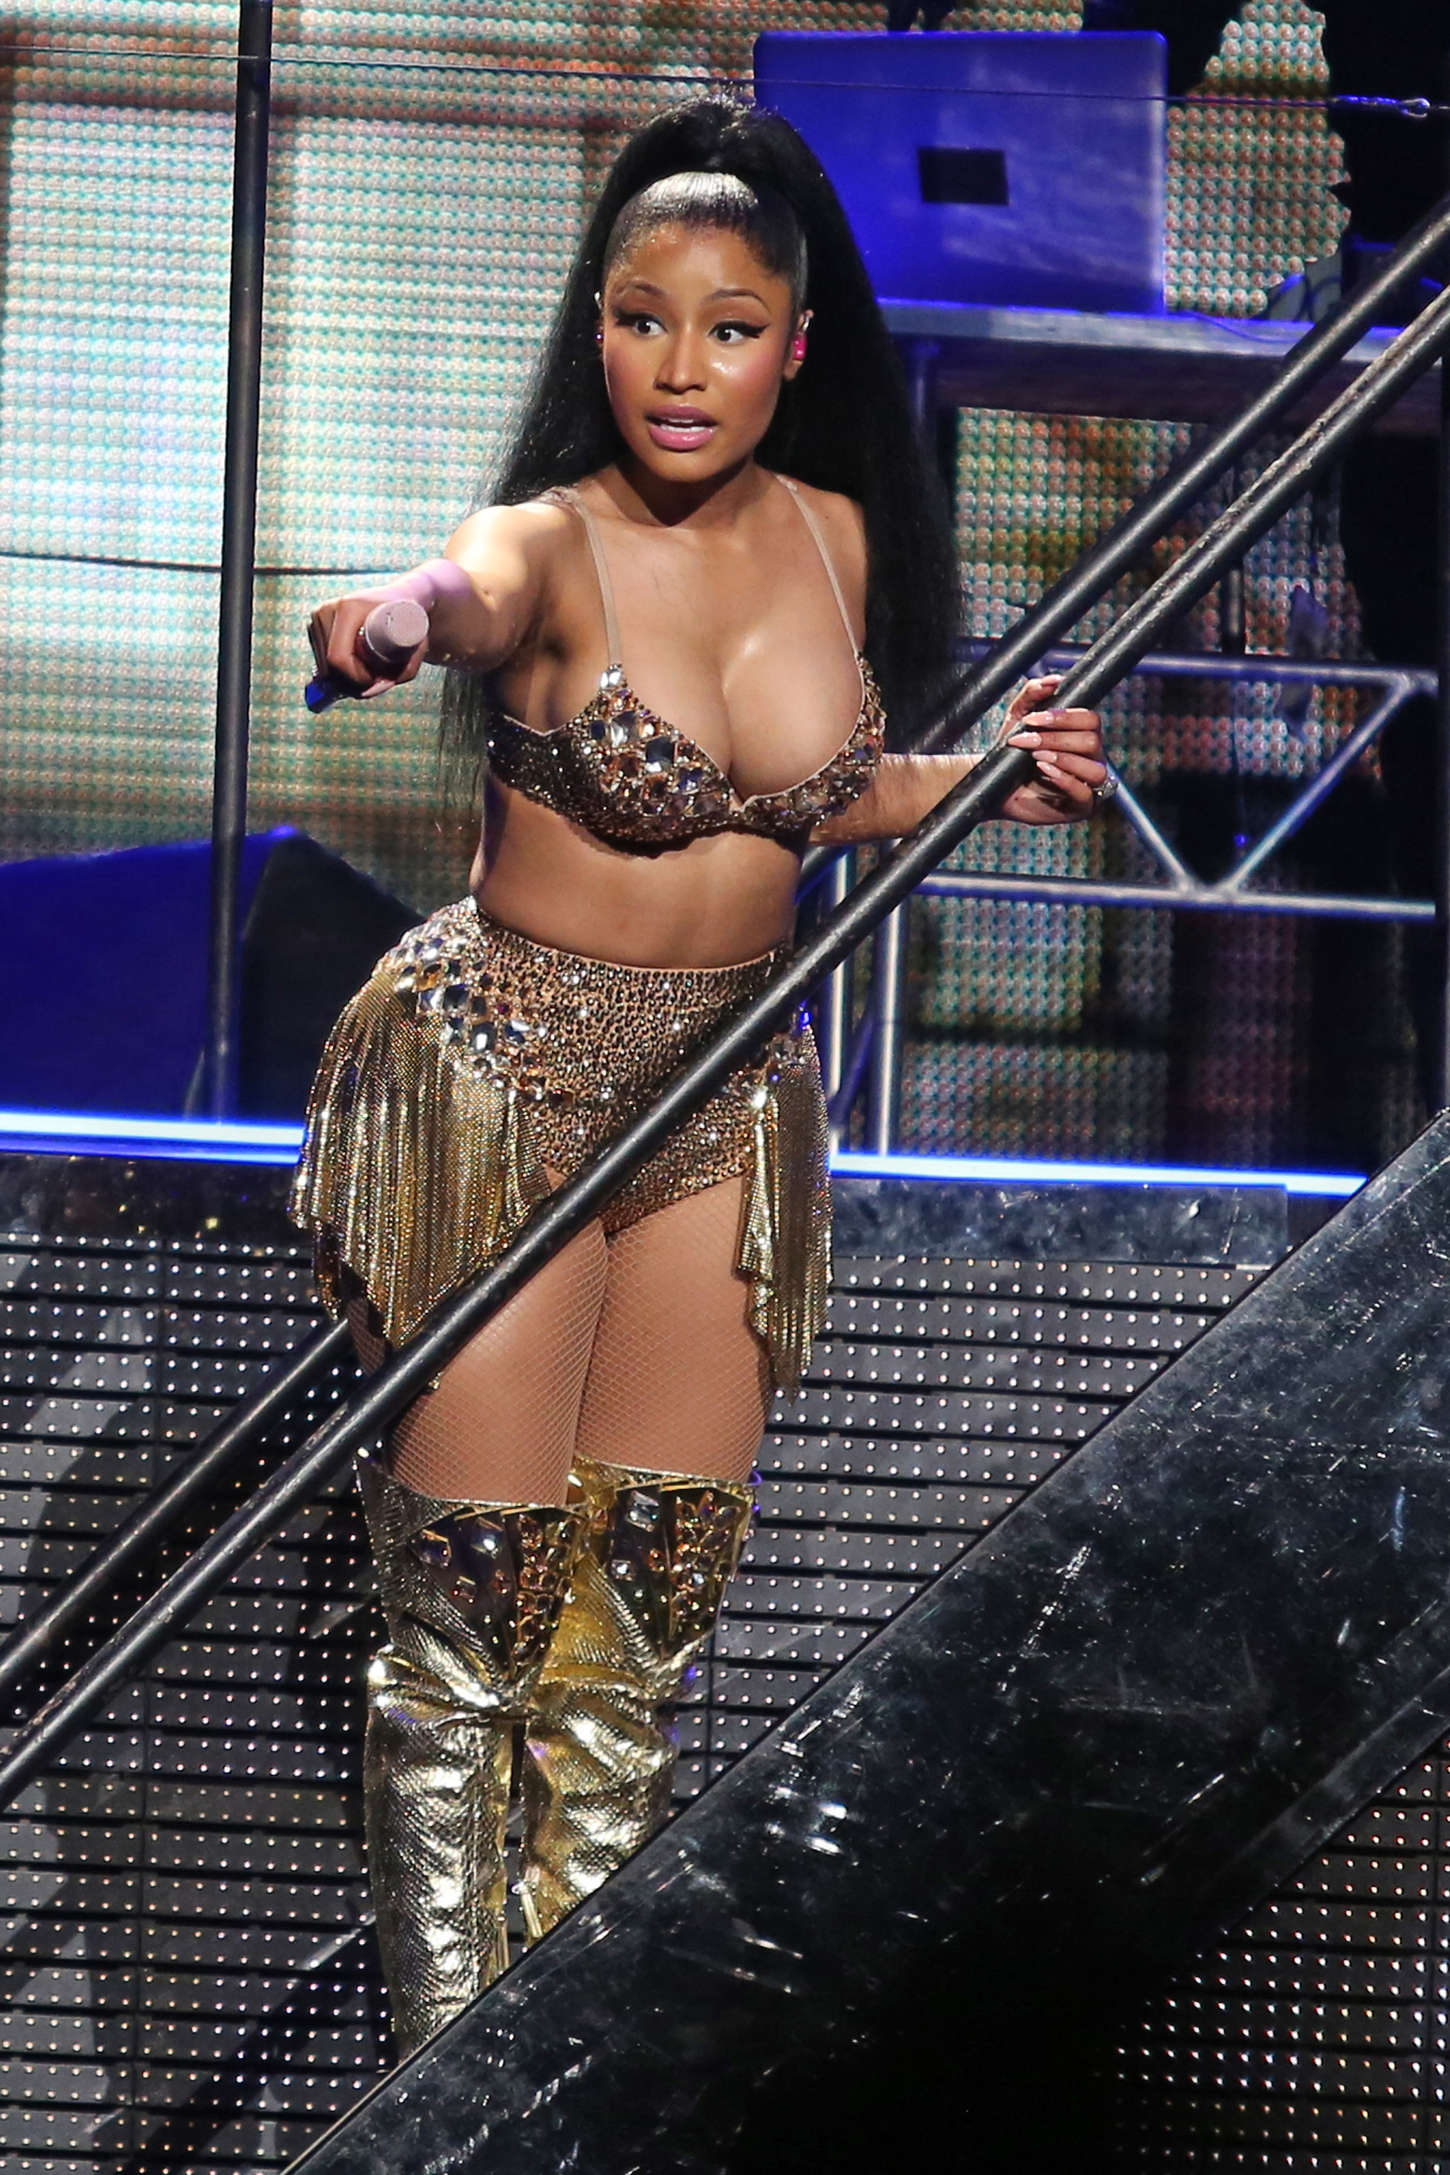 nicki minaj big booty uncensored